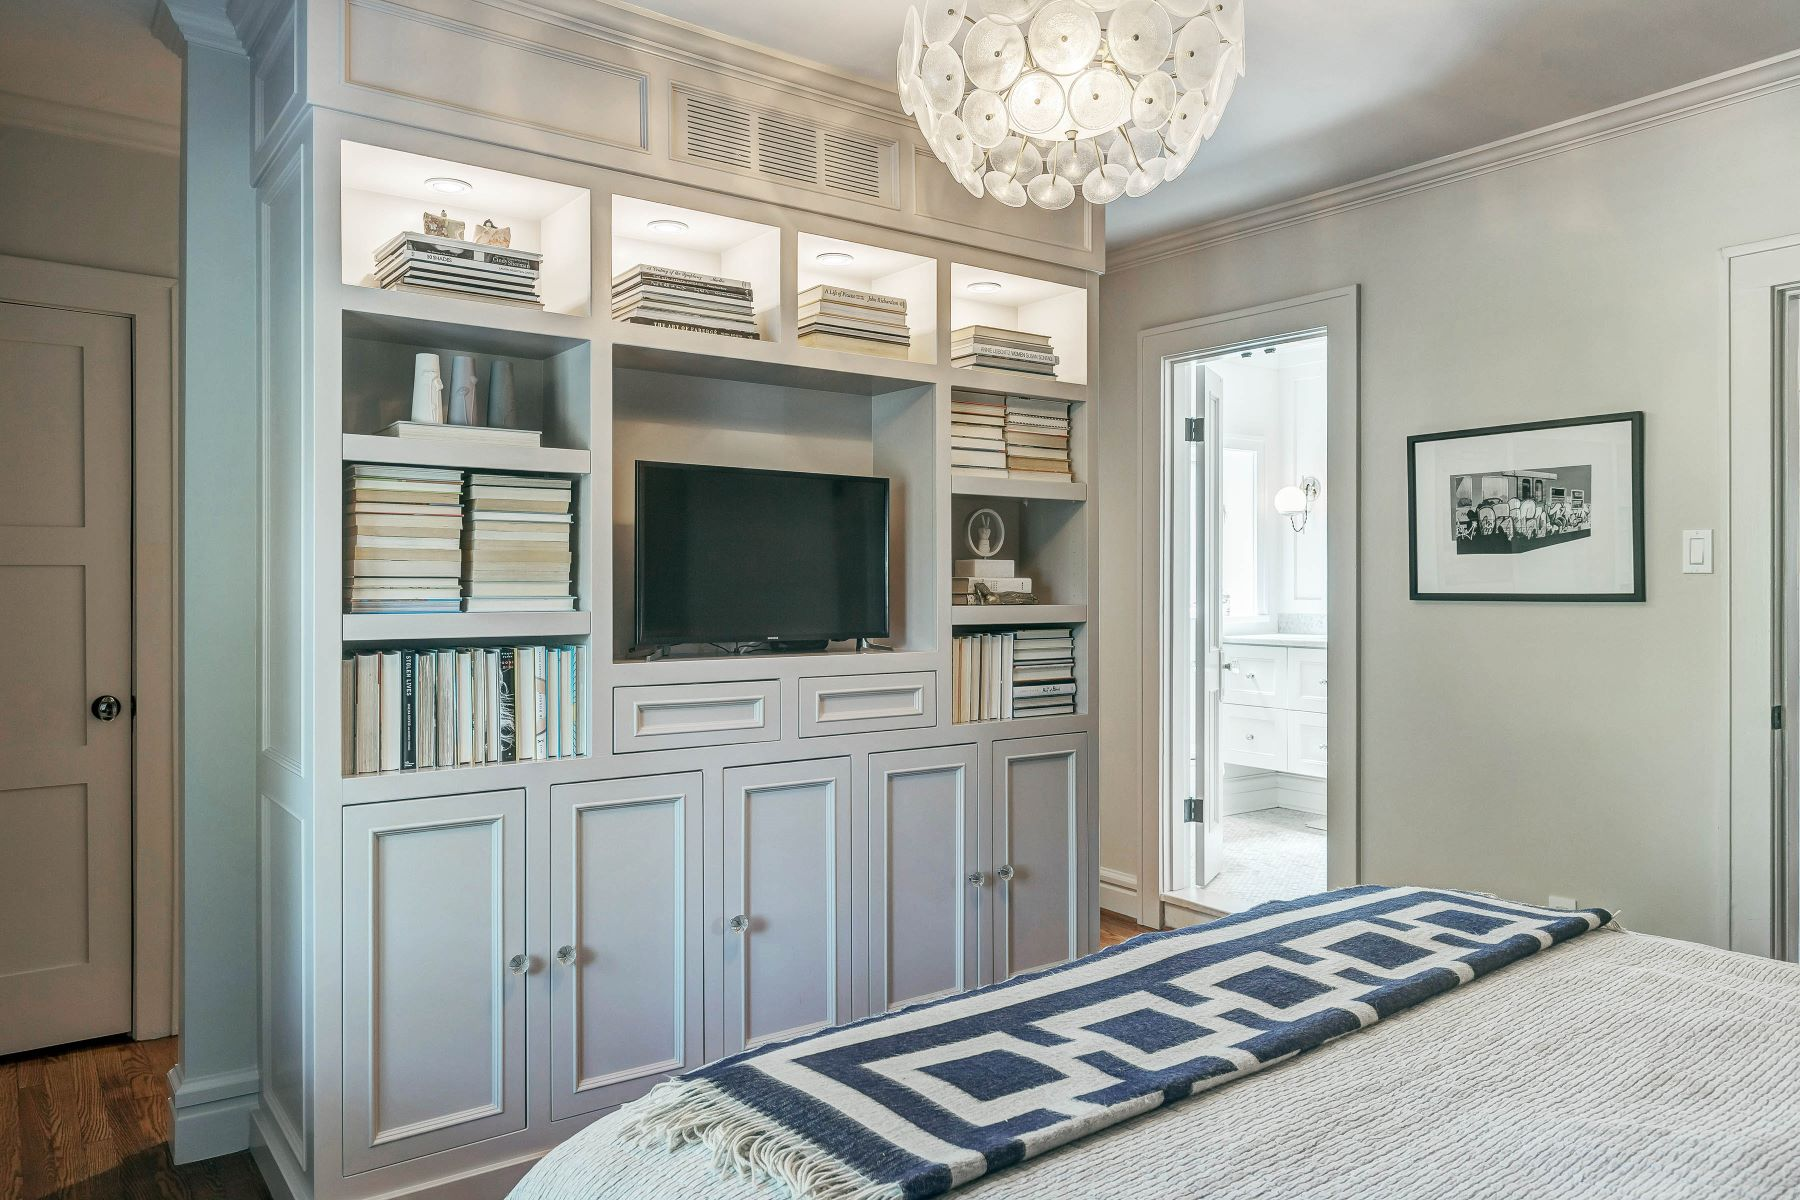 Additional photo for property listing at Stylish Home in Clayton 7622 Walinca Terrace Clayton, Missouri 63105 United States